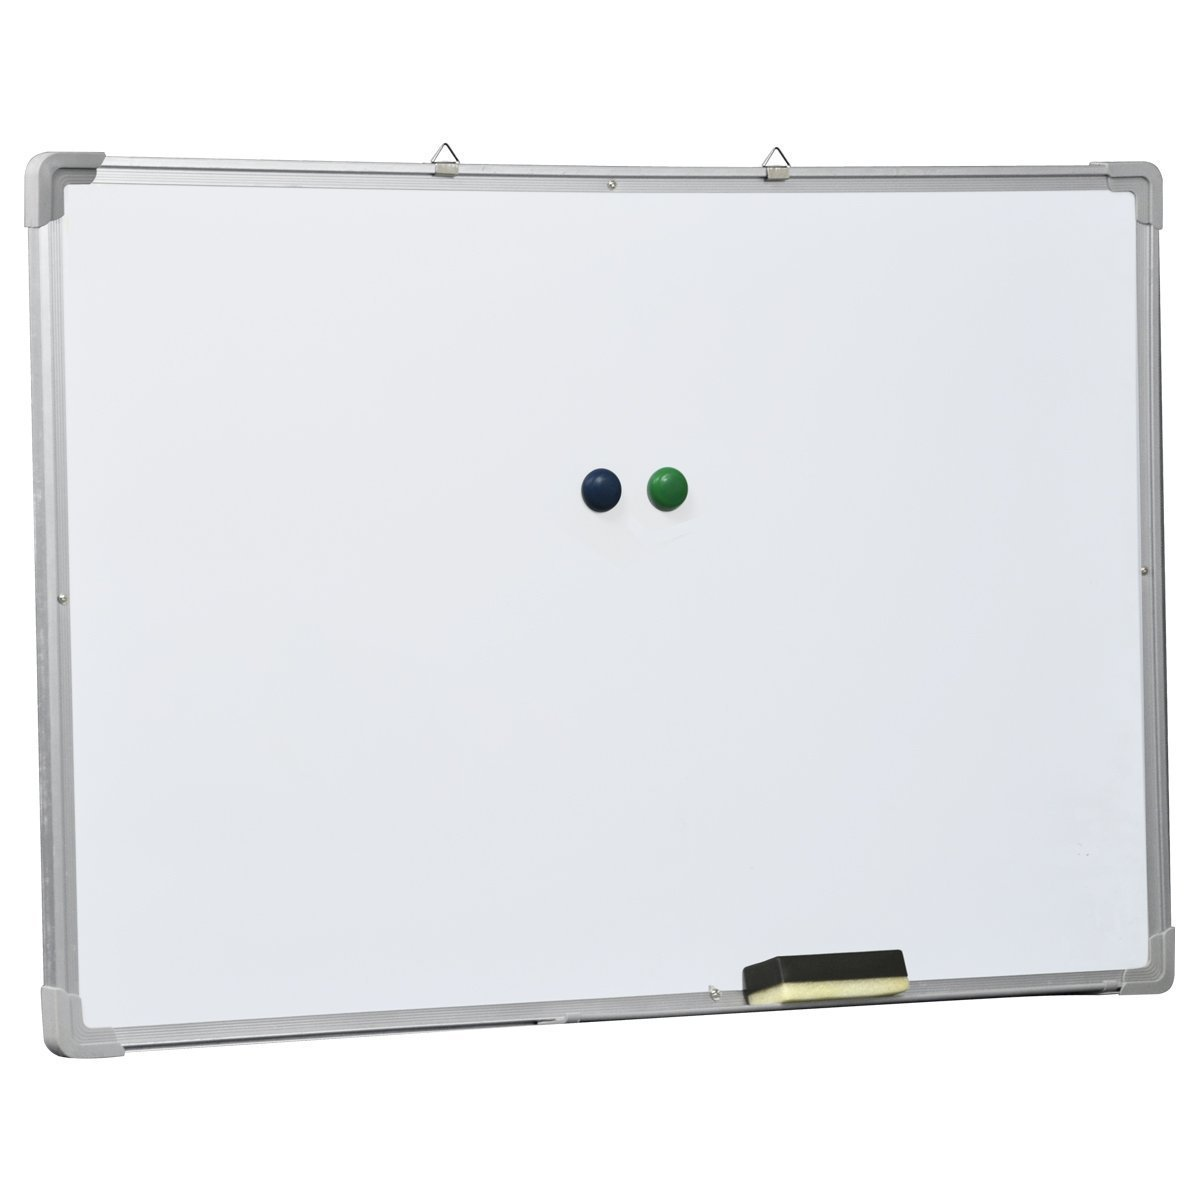 Ogima® Magic Whiteboard Magnetic Writing Dry Erase Board Office, Silver Aluminum Frame + Free Eraser and Magnetic Nail (48 x 36 inches)